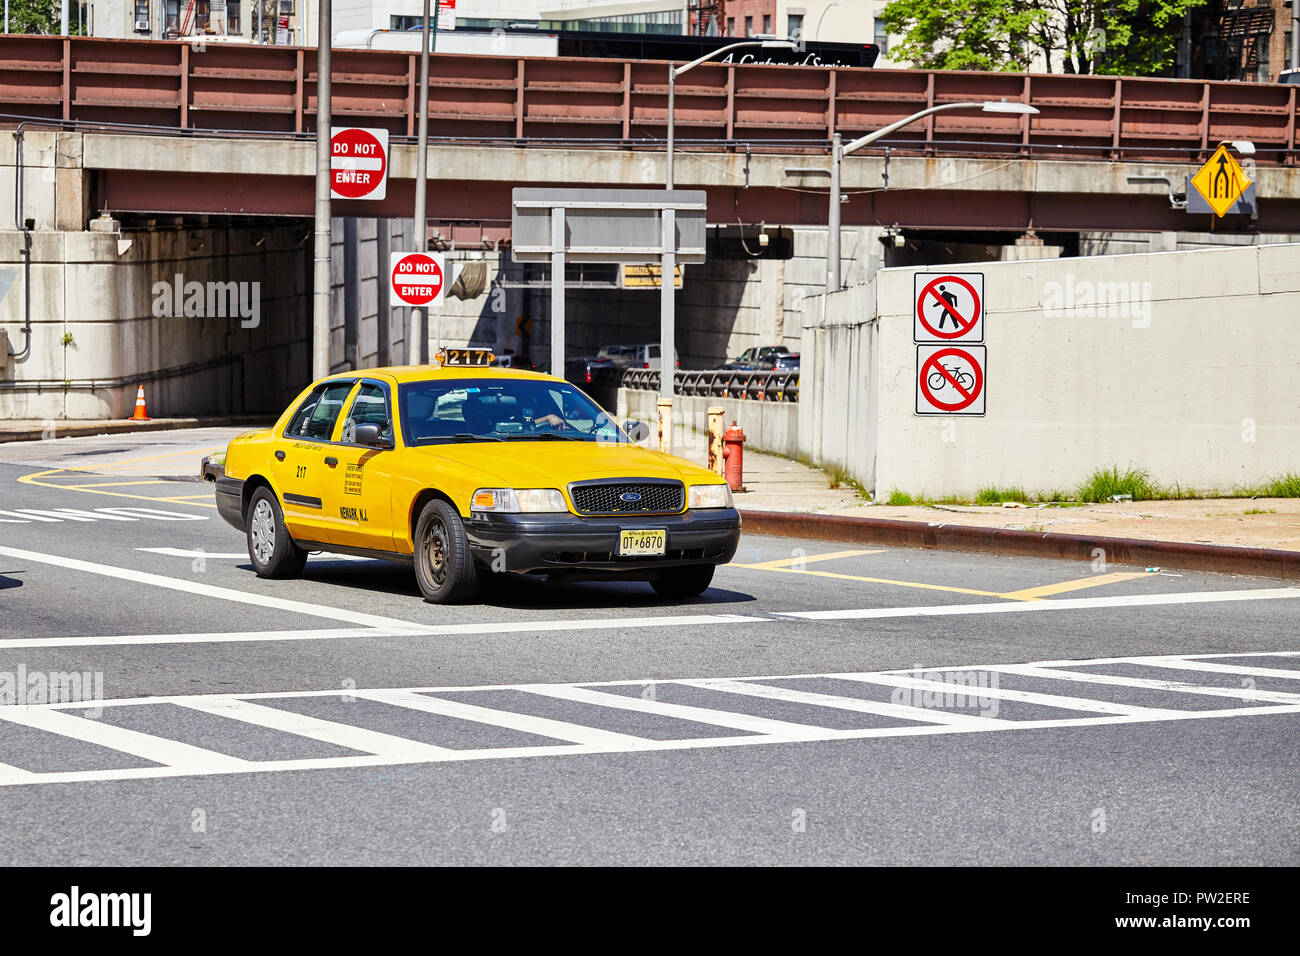 New York City, USA - June 28, 2018: Yellow taxi cab stops at zebra crossing. Stock Photo